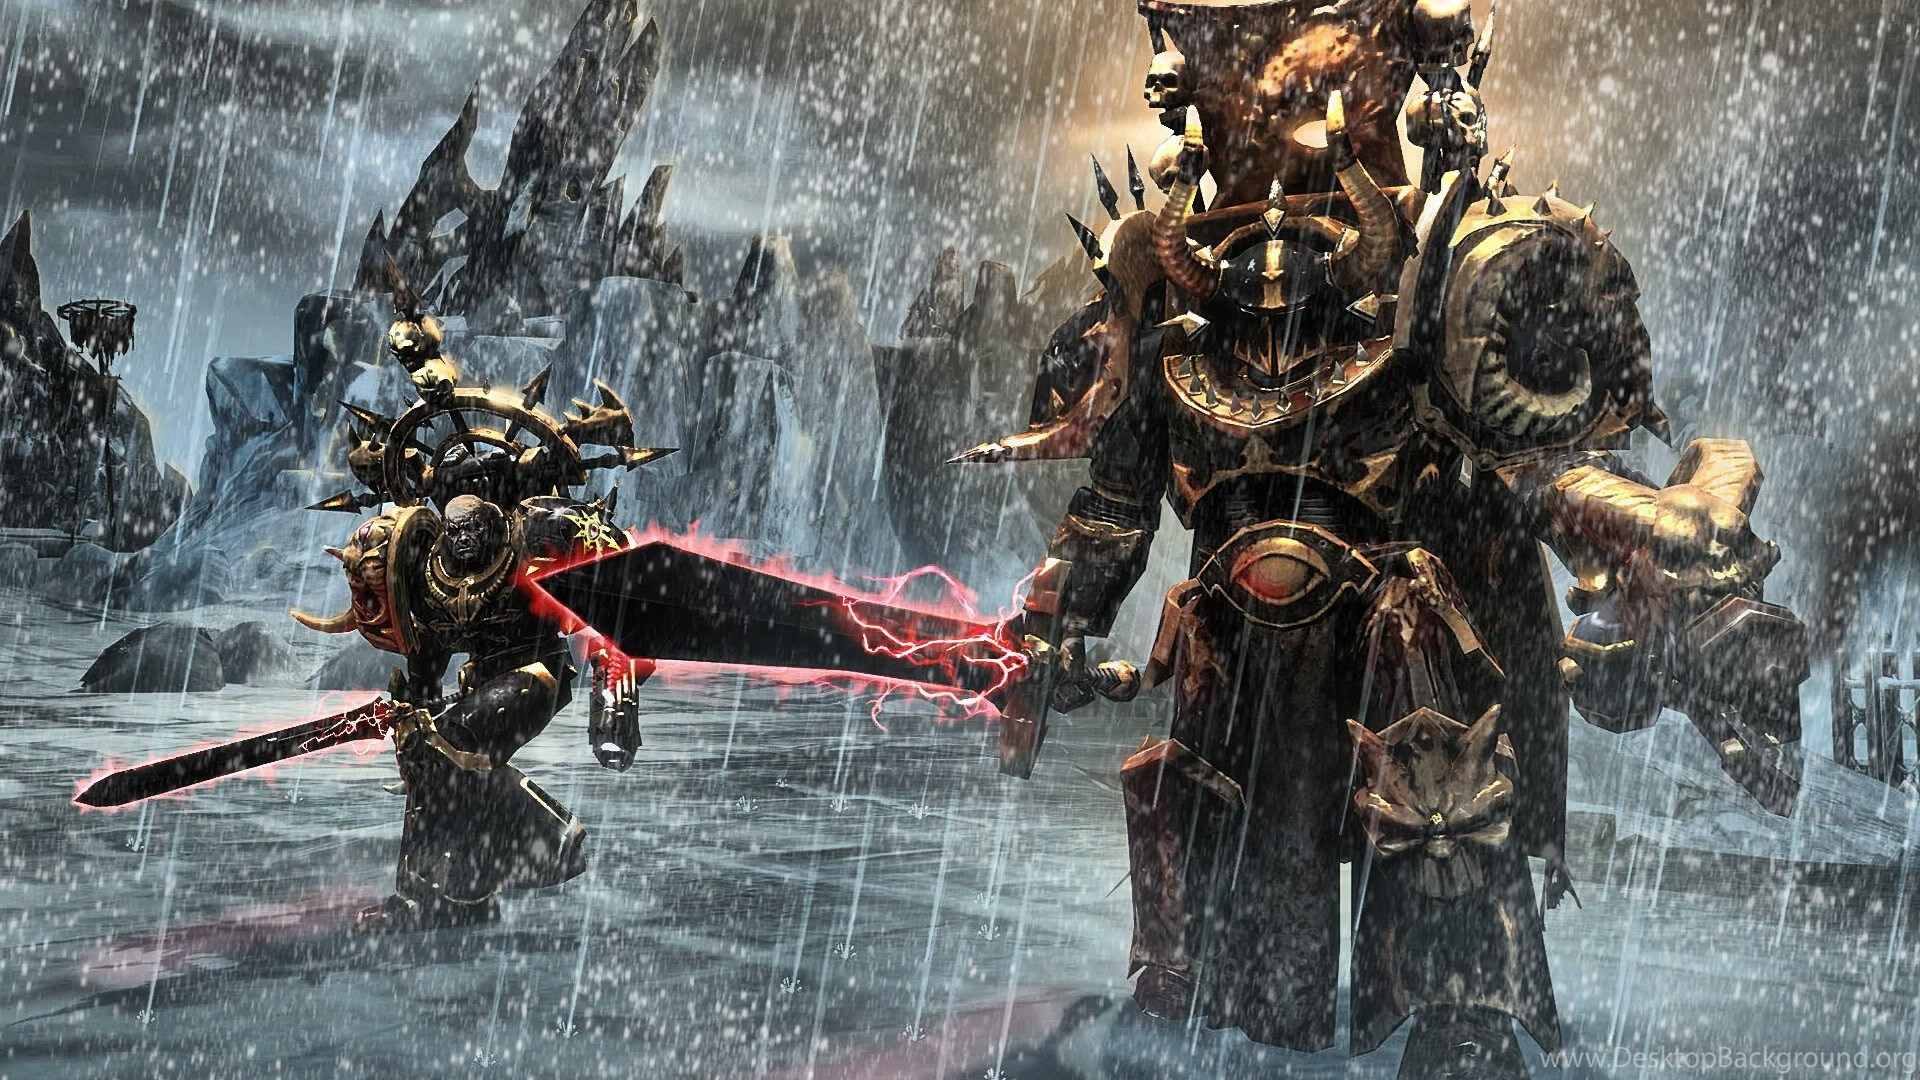 Jestingstock Com Warhammer 40k Wallpapers Chaos Space Marines